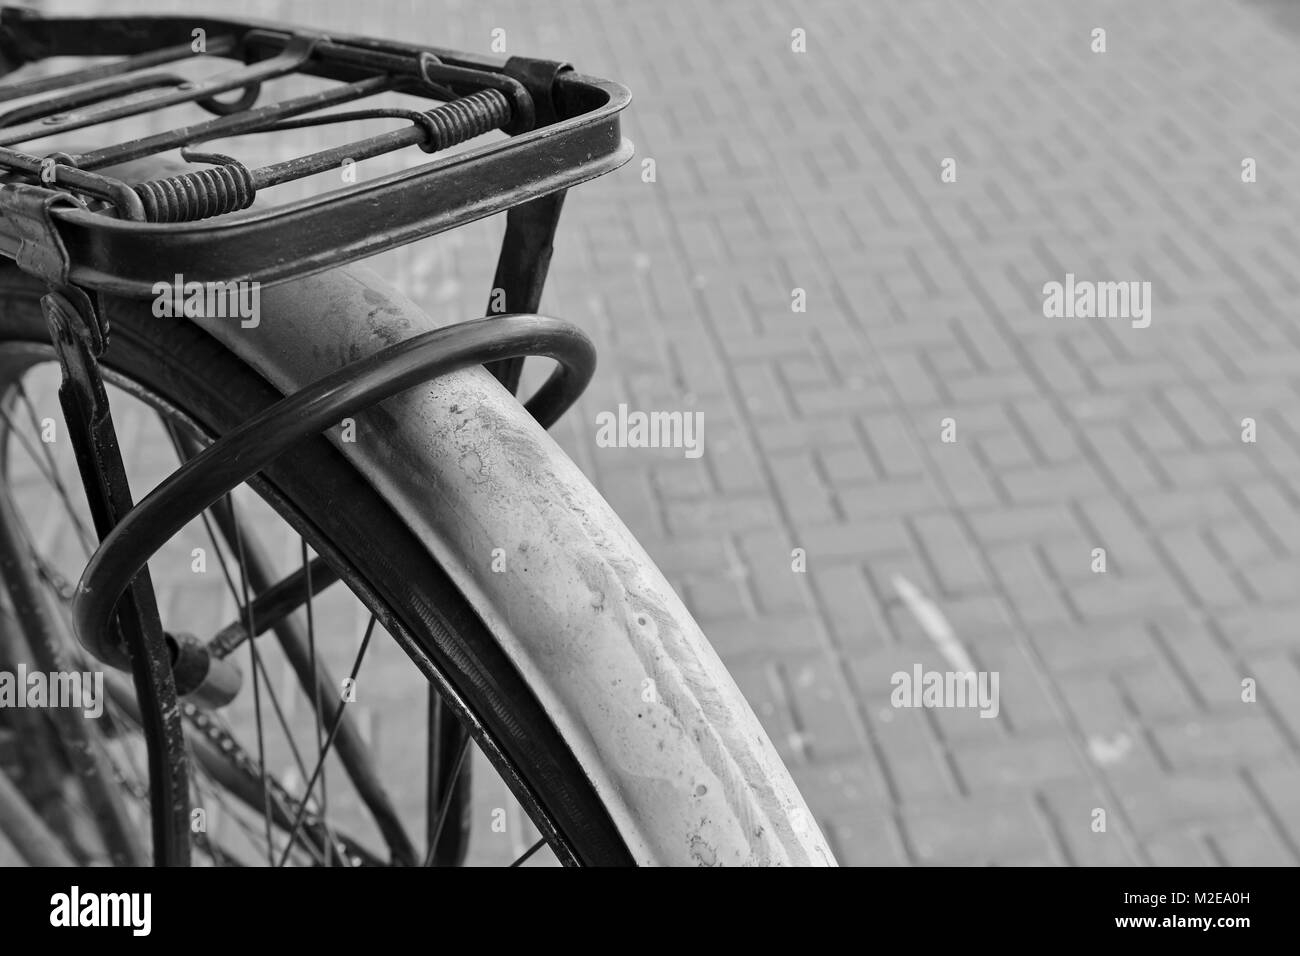 bicycle in b&w parked on the street - Stock Image